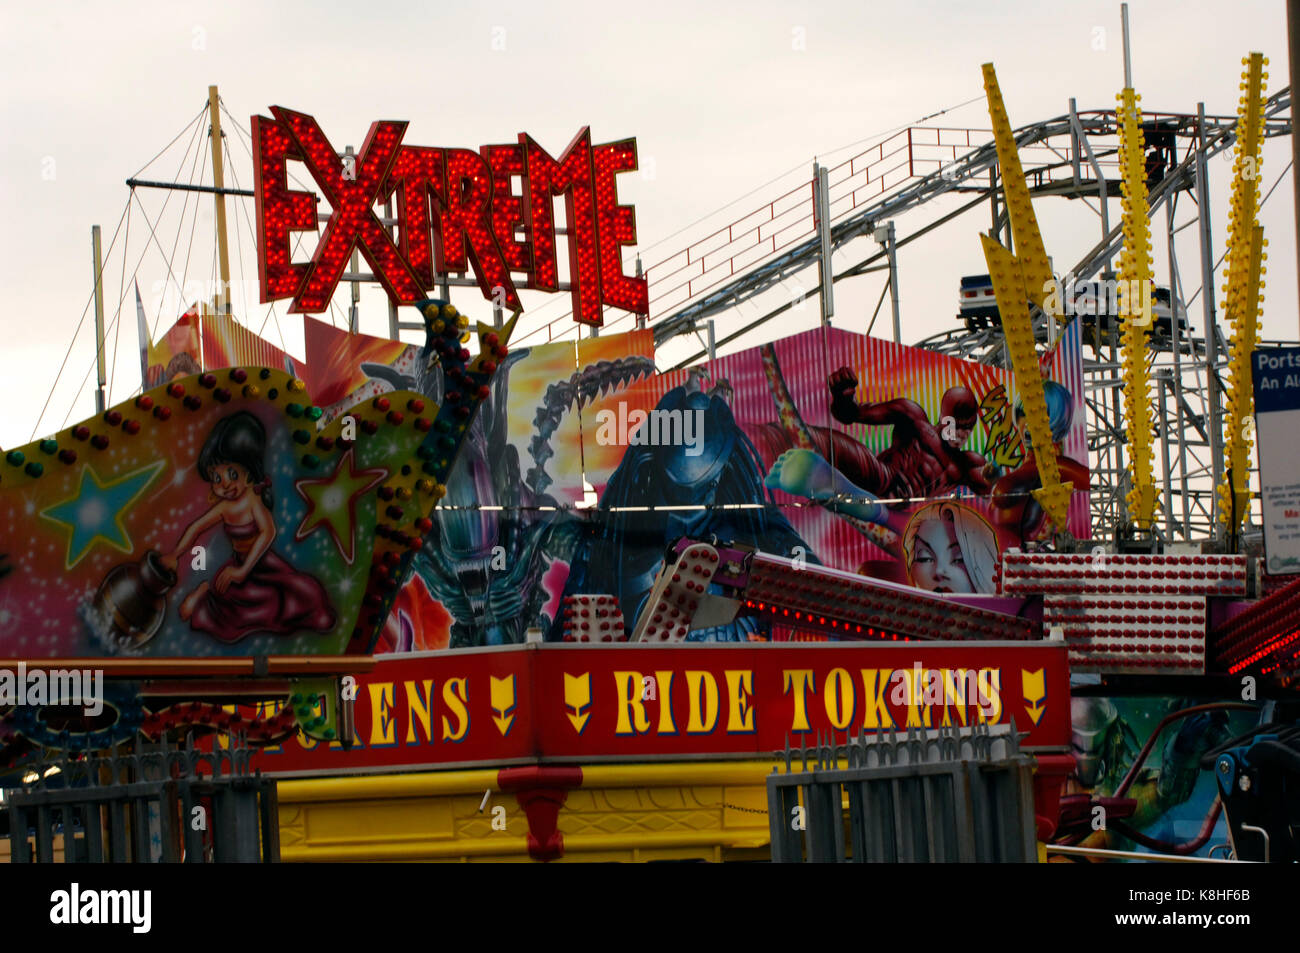 a fairground or funfair extreme ride. - Stock Image